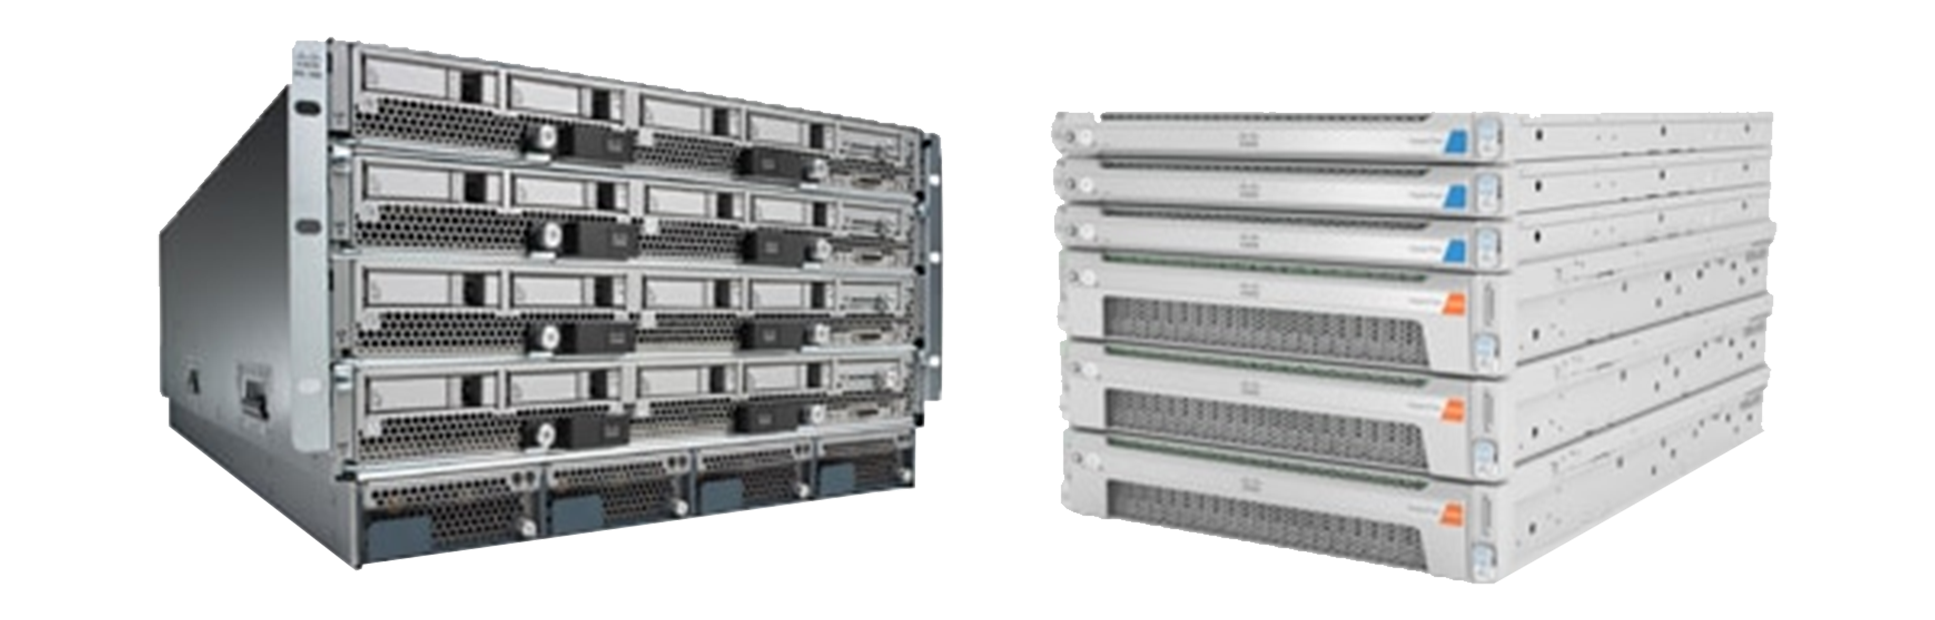 Cisco HyperFlex systems with compute-only nodes